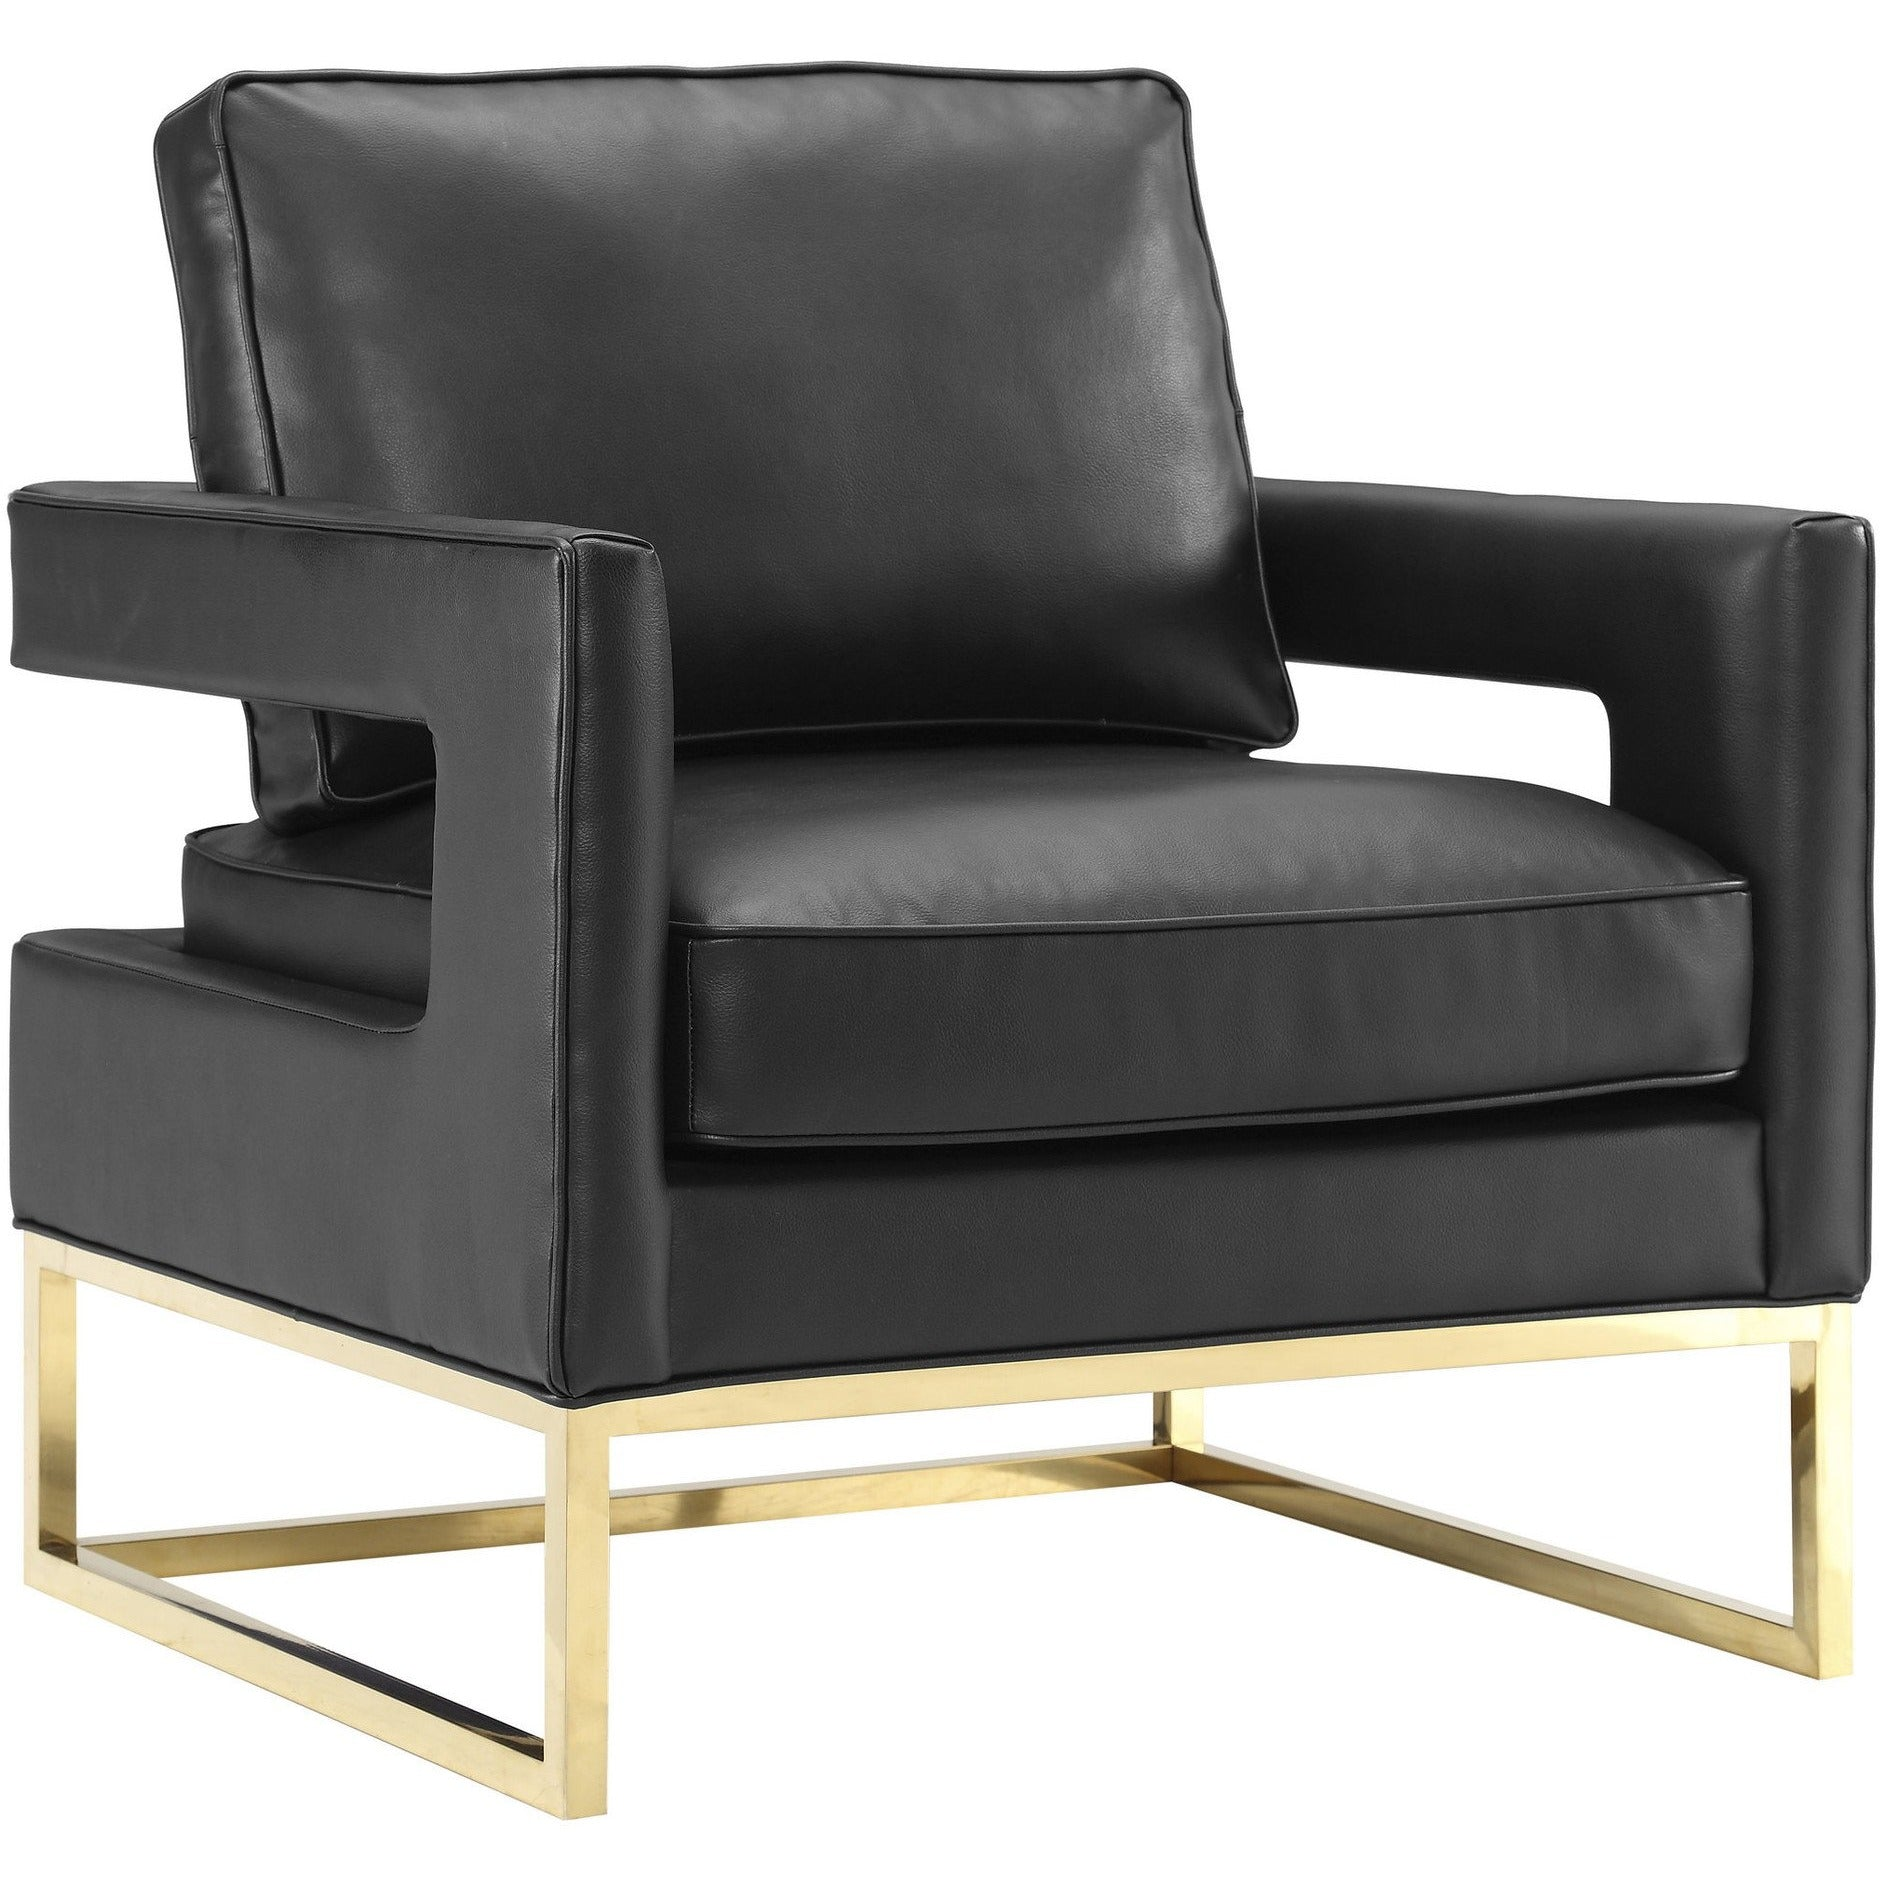 furniture living allen front shop ethan images us chairs chaises parker leather chair room en null black